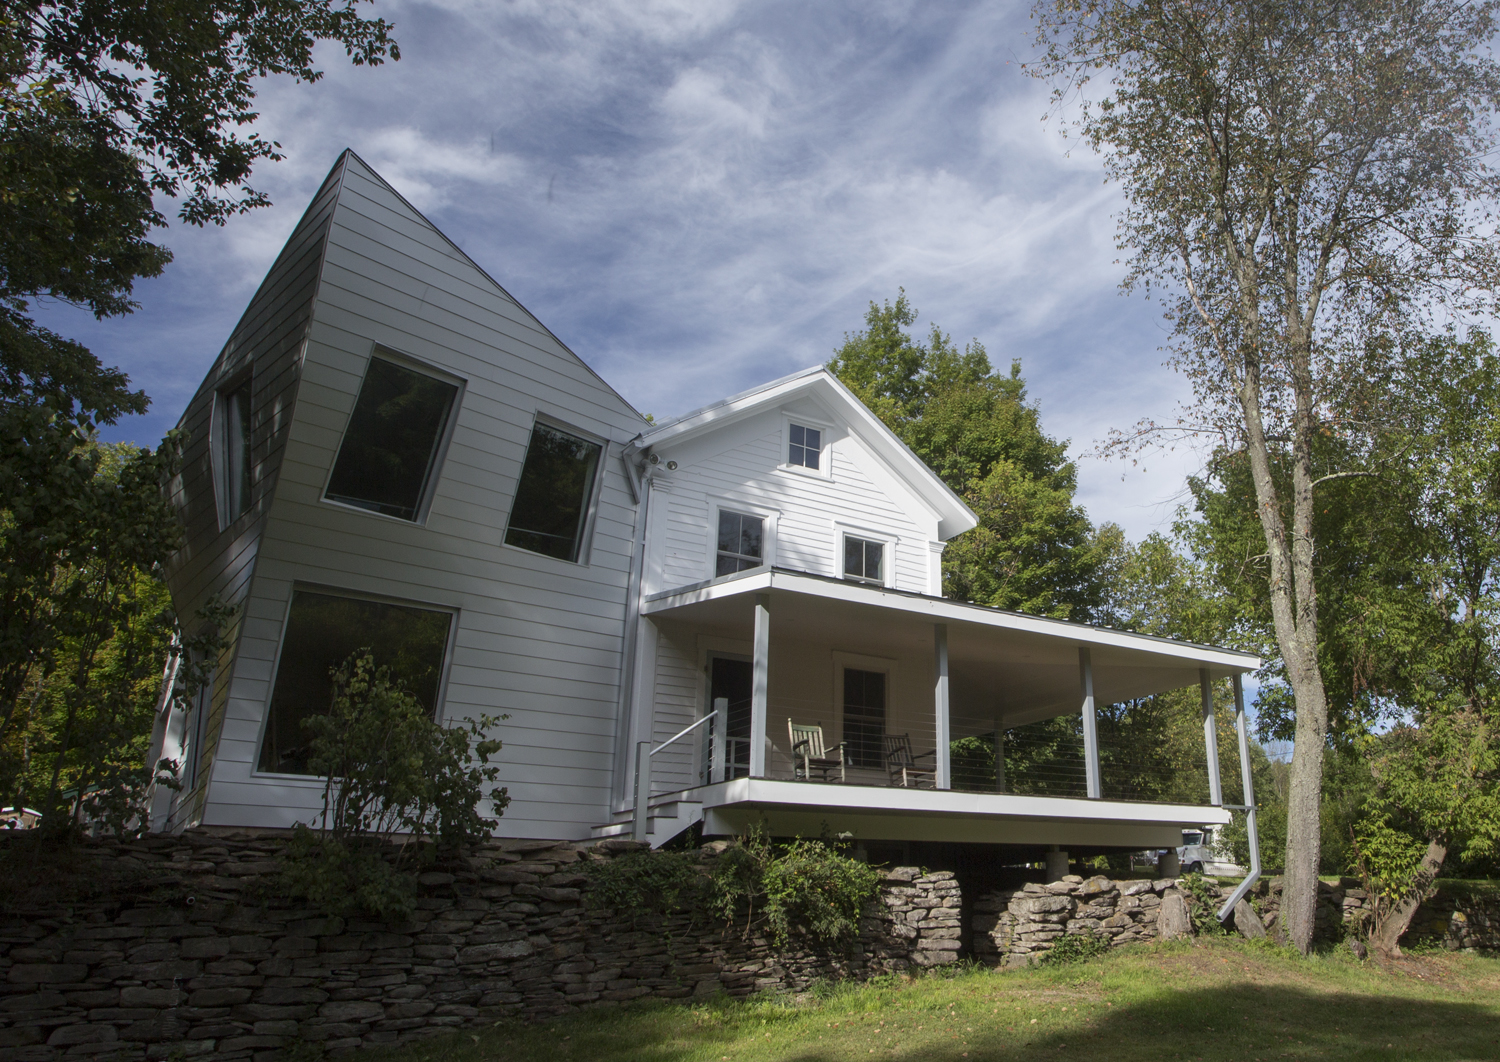 Tom Givone, Twist Farmhouse torqued volume designer and owner of the Floating Farmhouse in the Catskills, upstate New York.